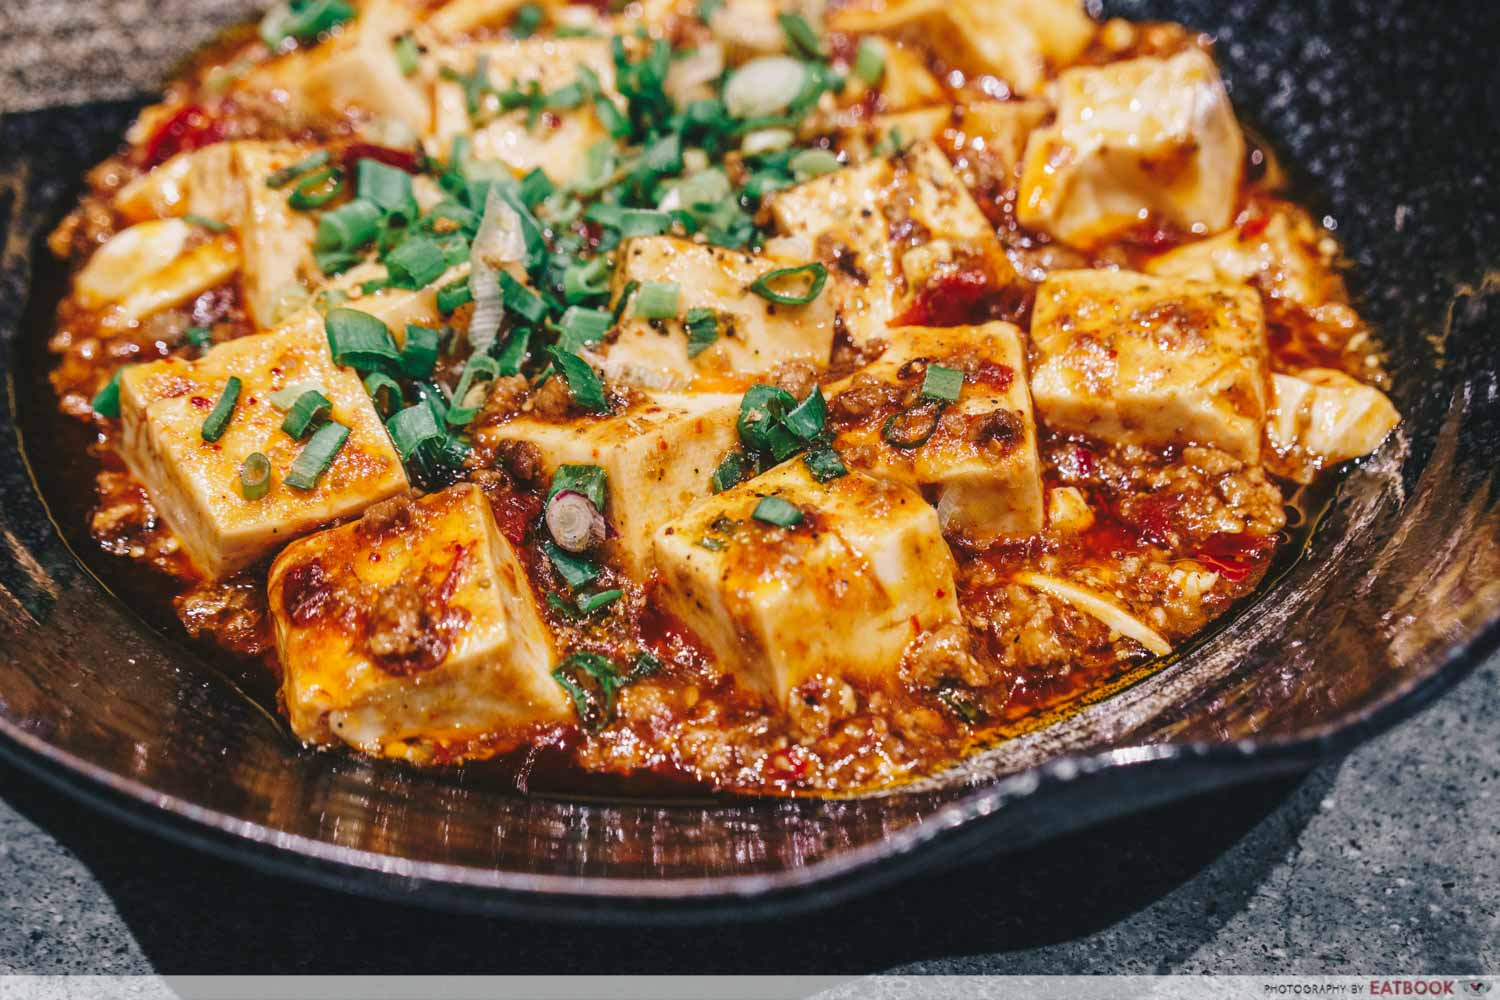 Shang Social - Jewel Mapo tofu with minced beef